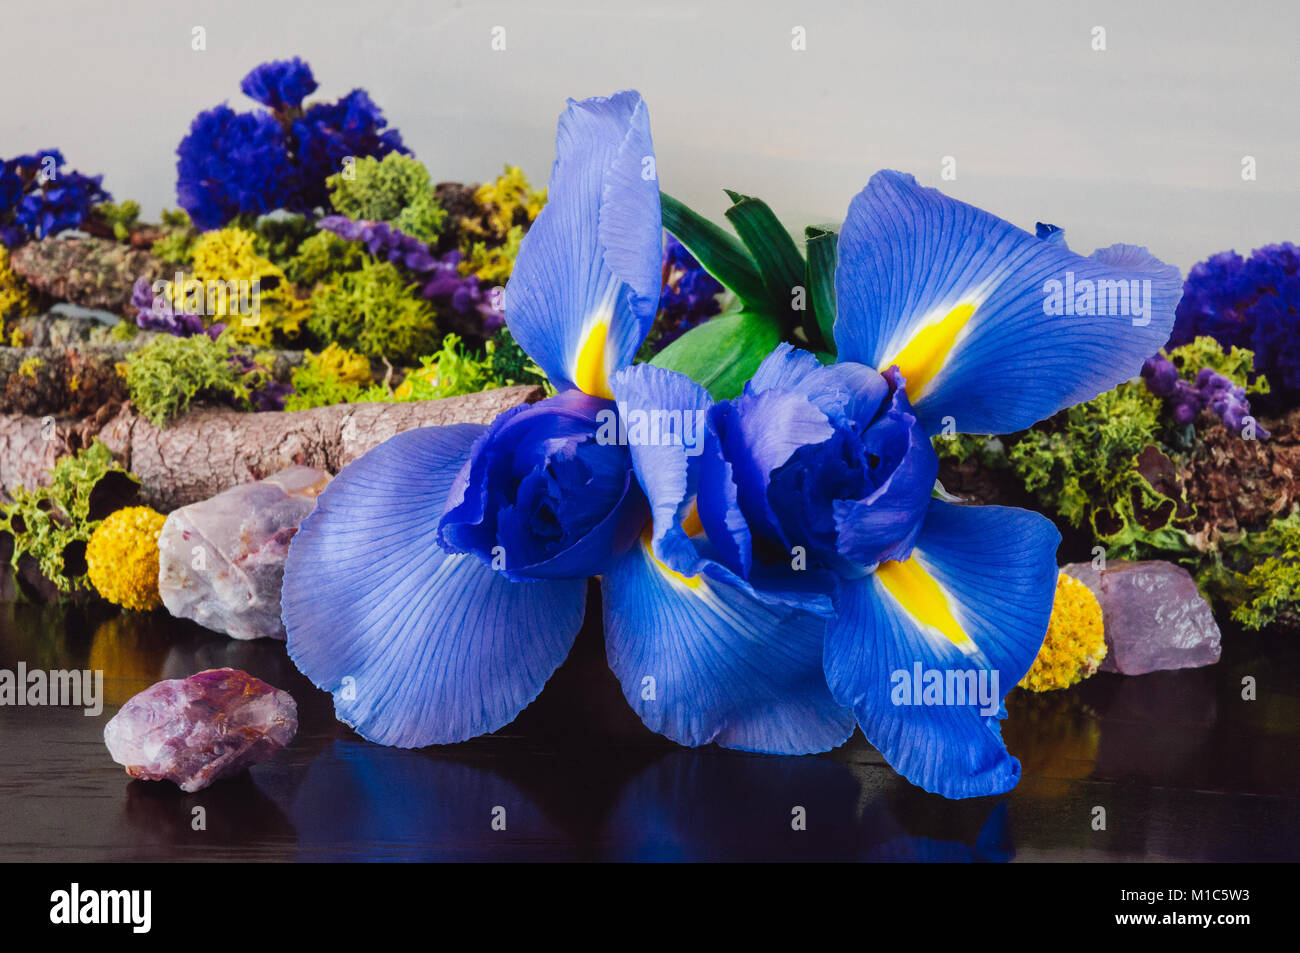 Iris Flowers with Amethyst and Dried Moss and Flowers - Stock Image